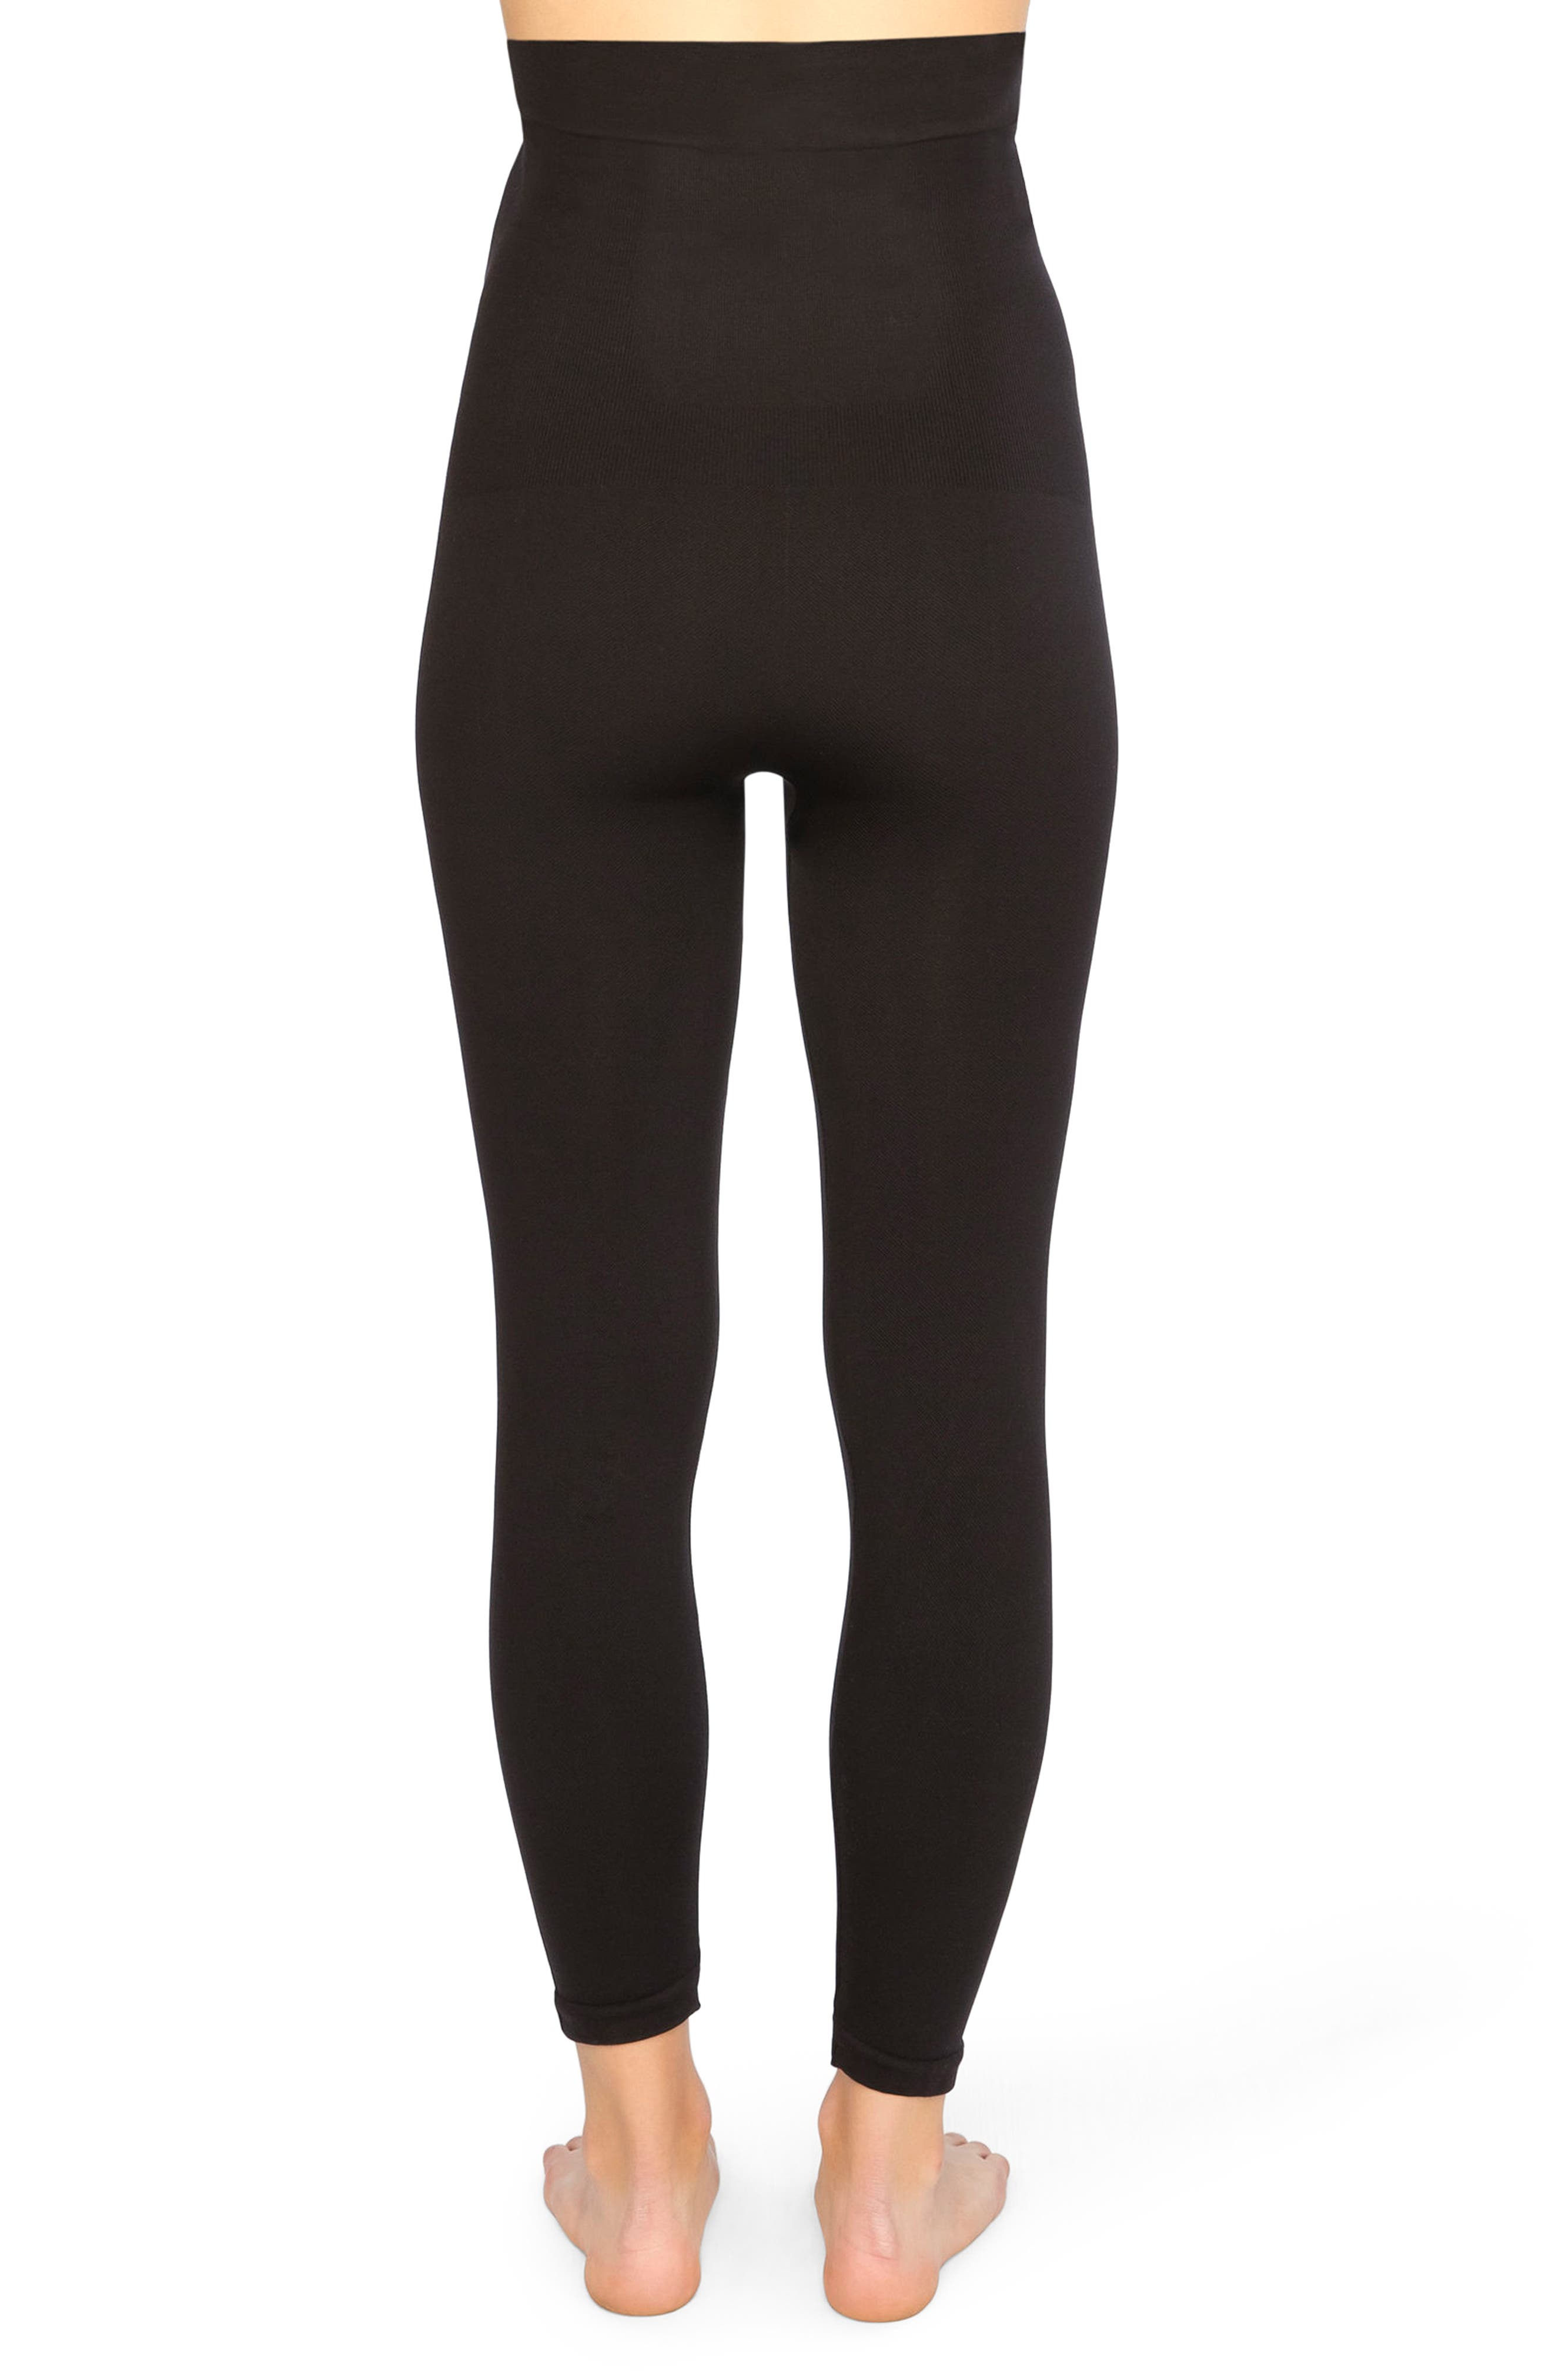 Look At Me Now High Waist Seamless Leggings,                             Alternate thumbnail 2, color,                             Very Black